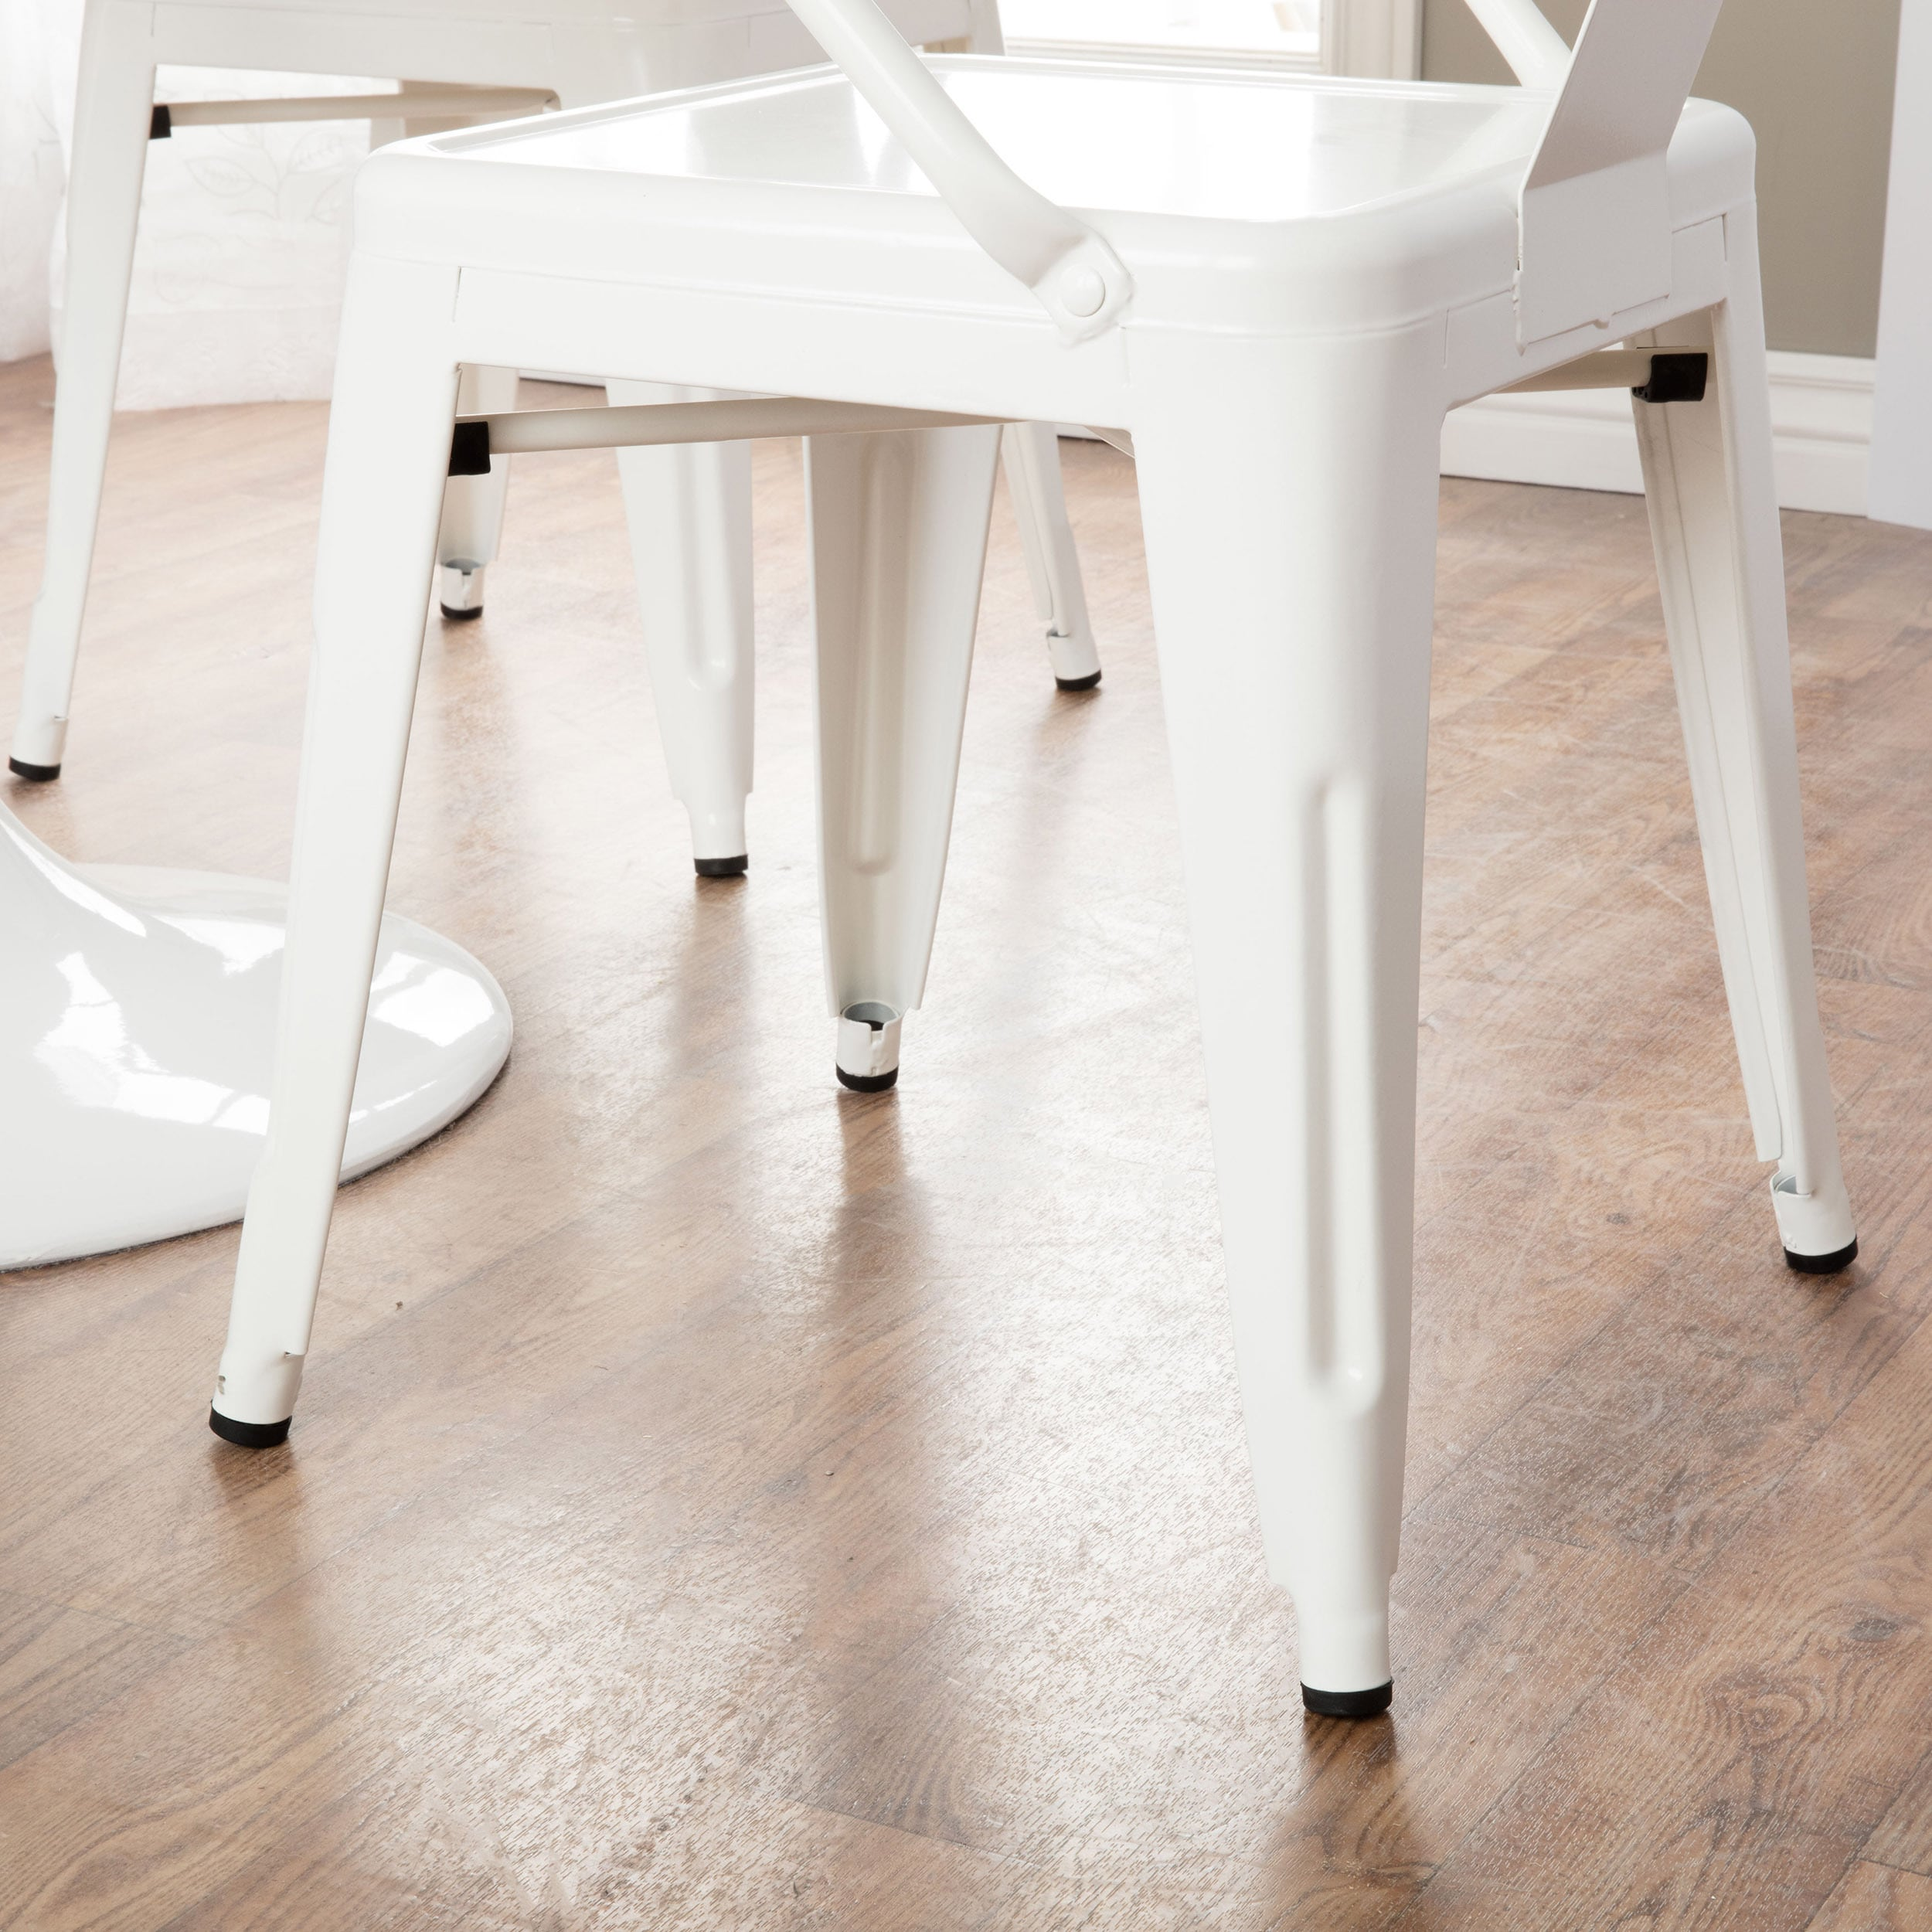 DETAILS. These Stacking Chairs Come In A White ...